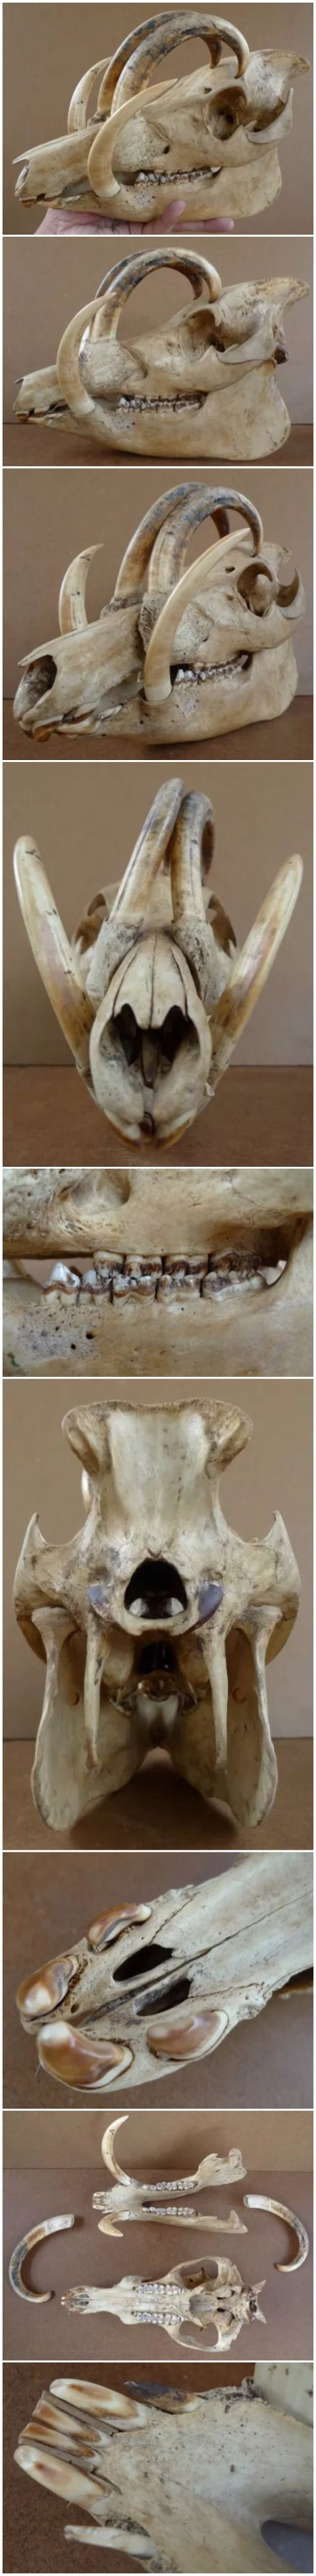 Abirusa Pig Skull Detailed Anatomical Pictures All Angles Teeth